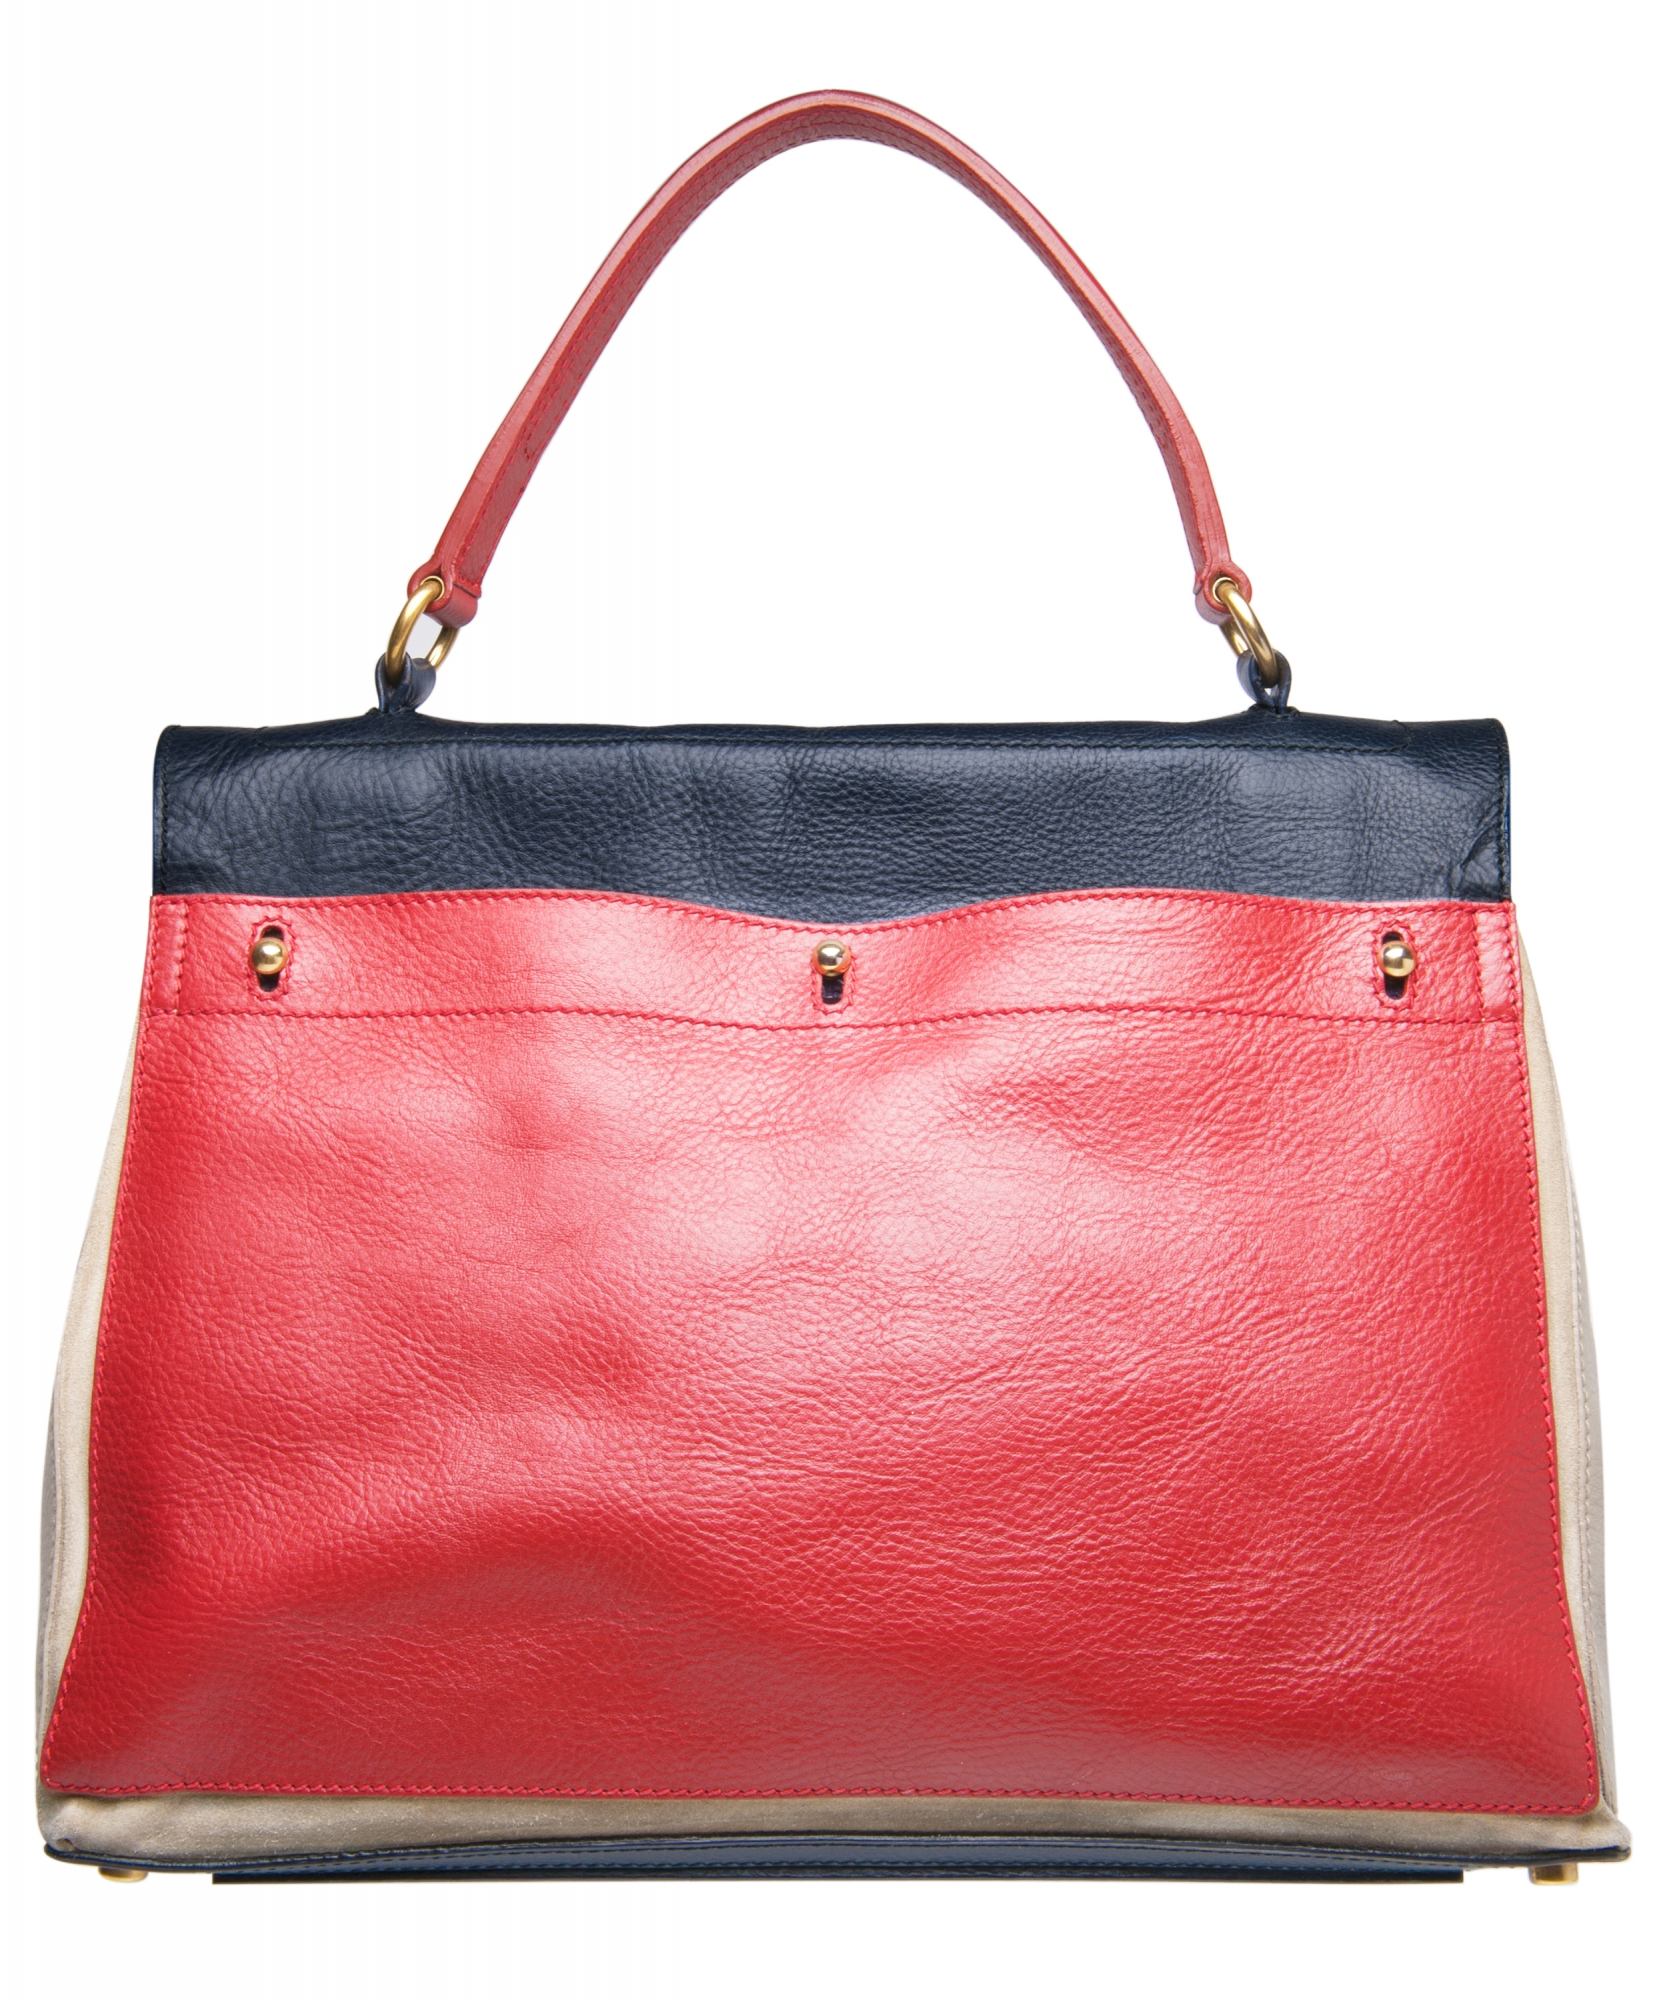 61c1f56a28 ... Handbags  Yves Saint Laurent Tricolor Muse Two Satchel - Large. Tap to  expand